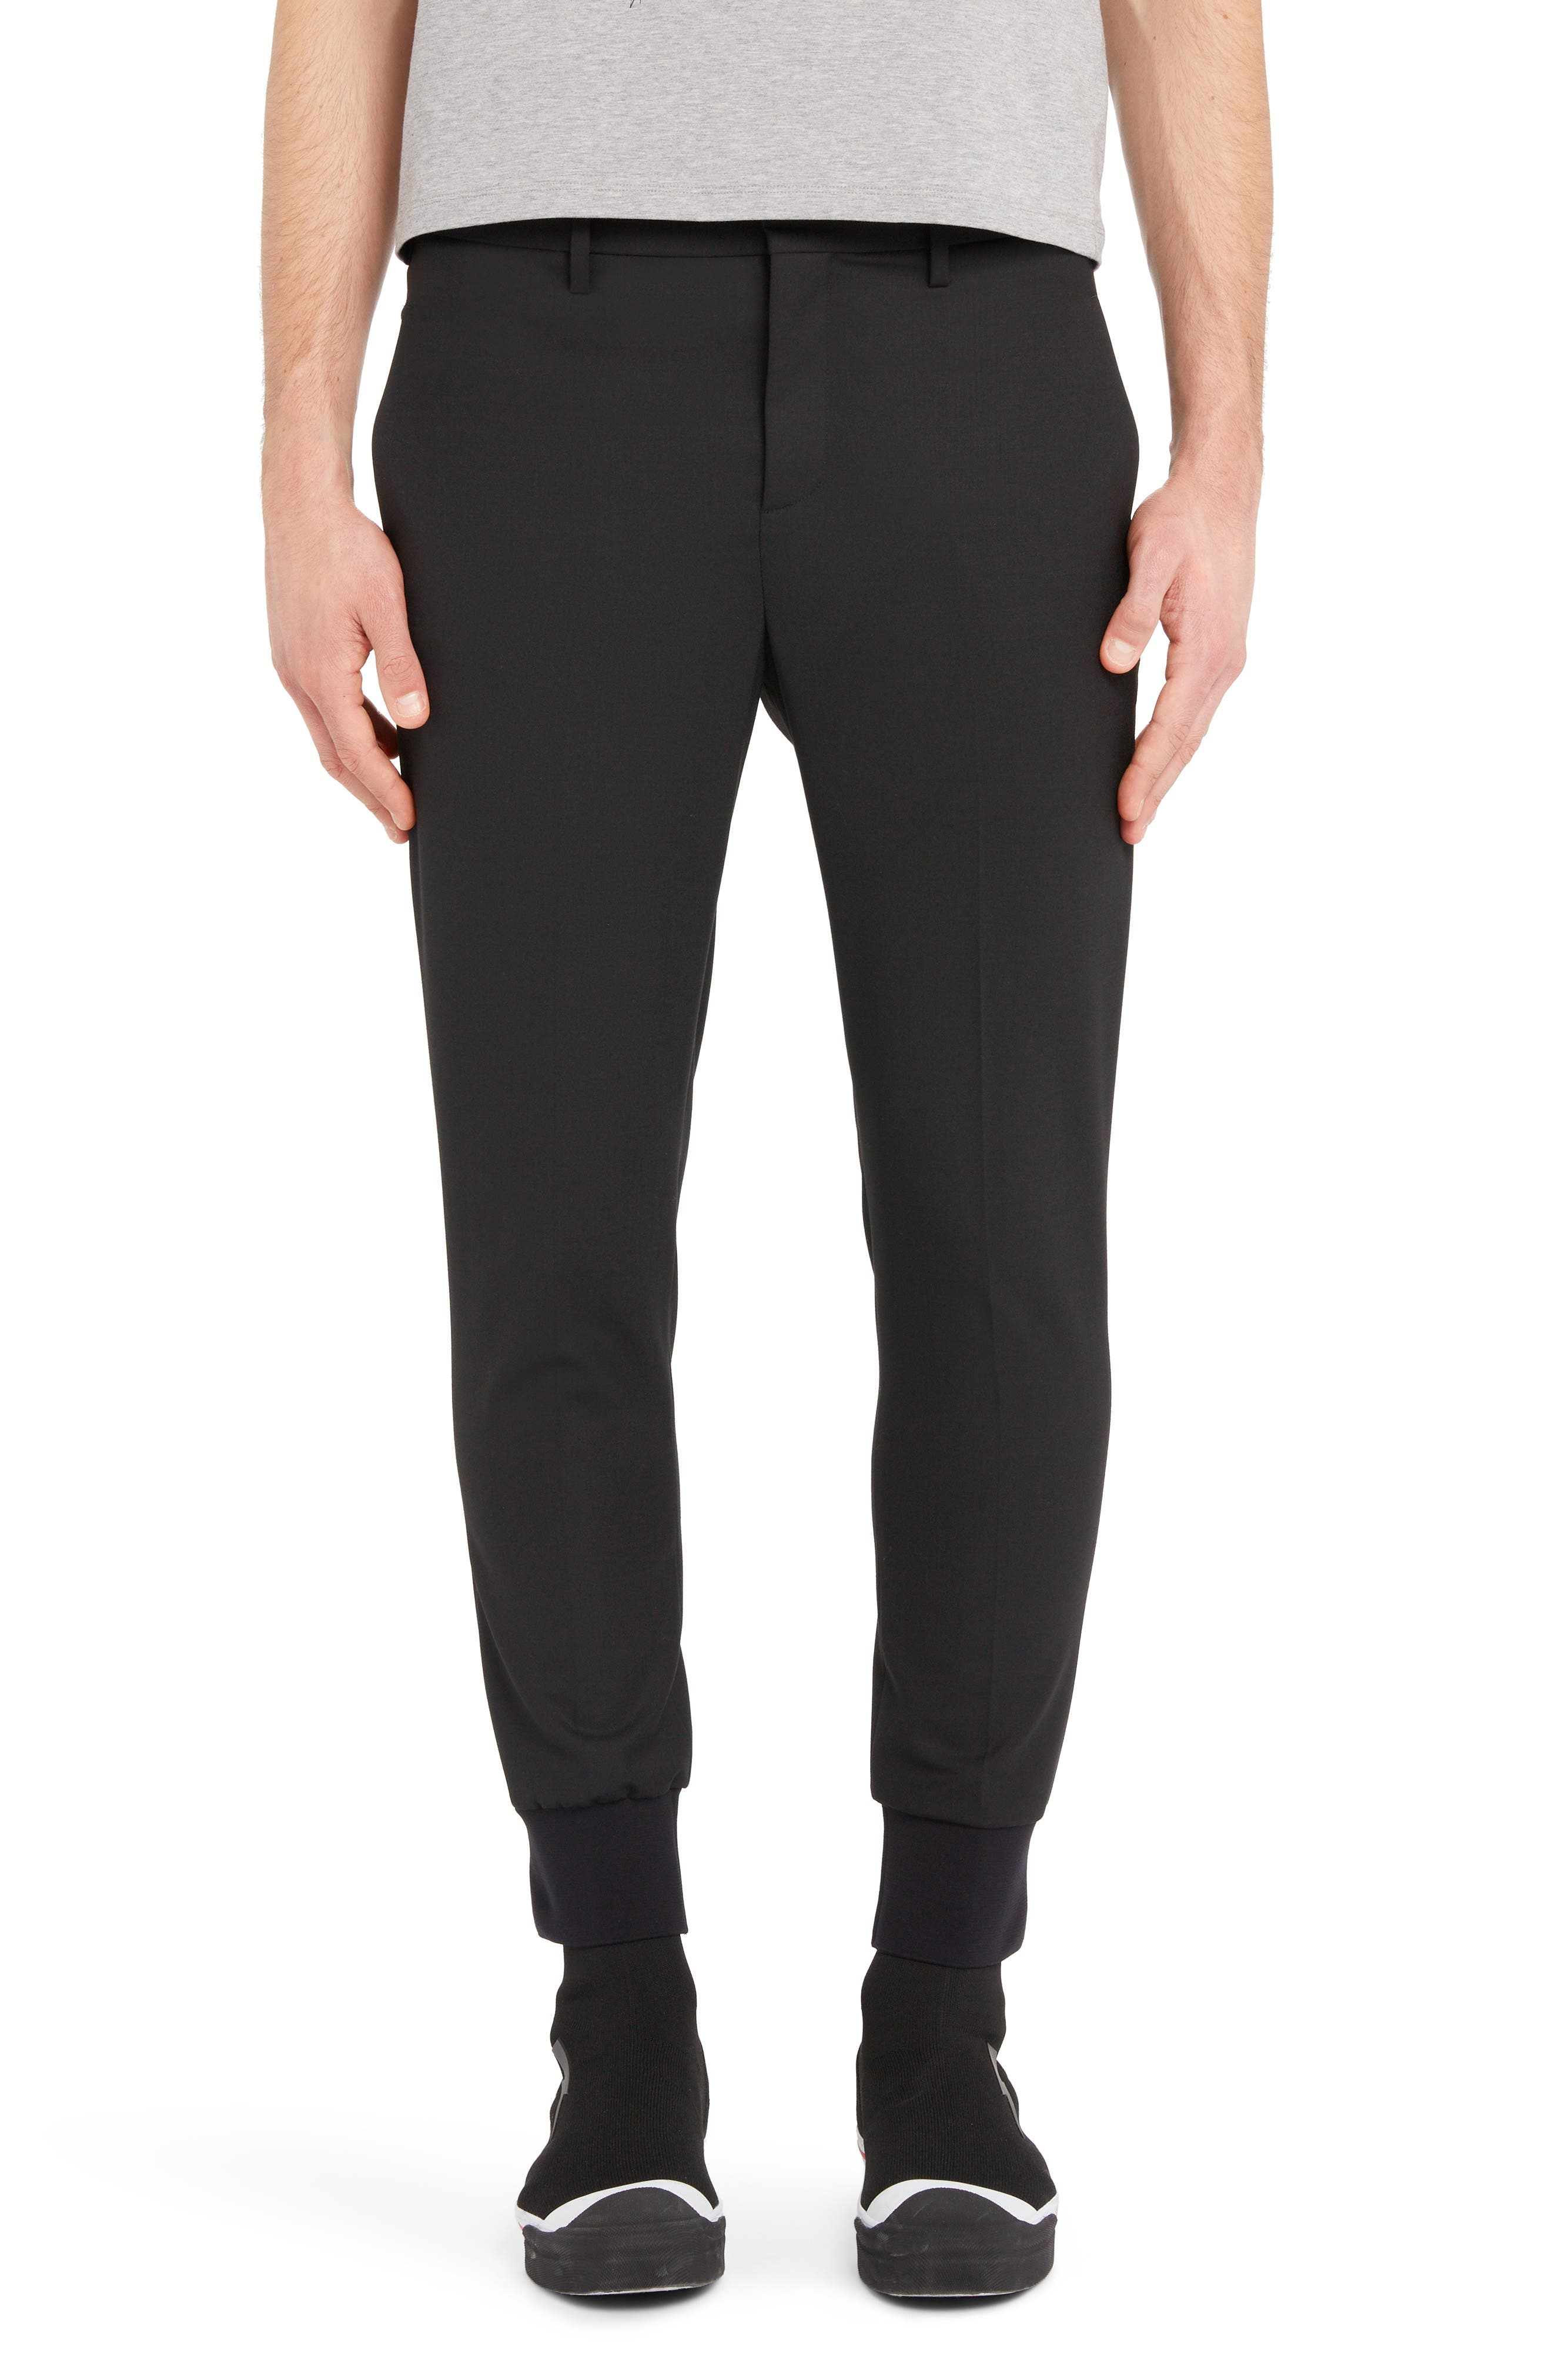 NEIL BARRETT, Ribbed Cuff Trousers, Main thumbnail 1, color, BLACK